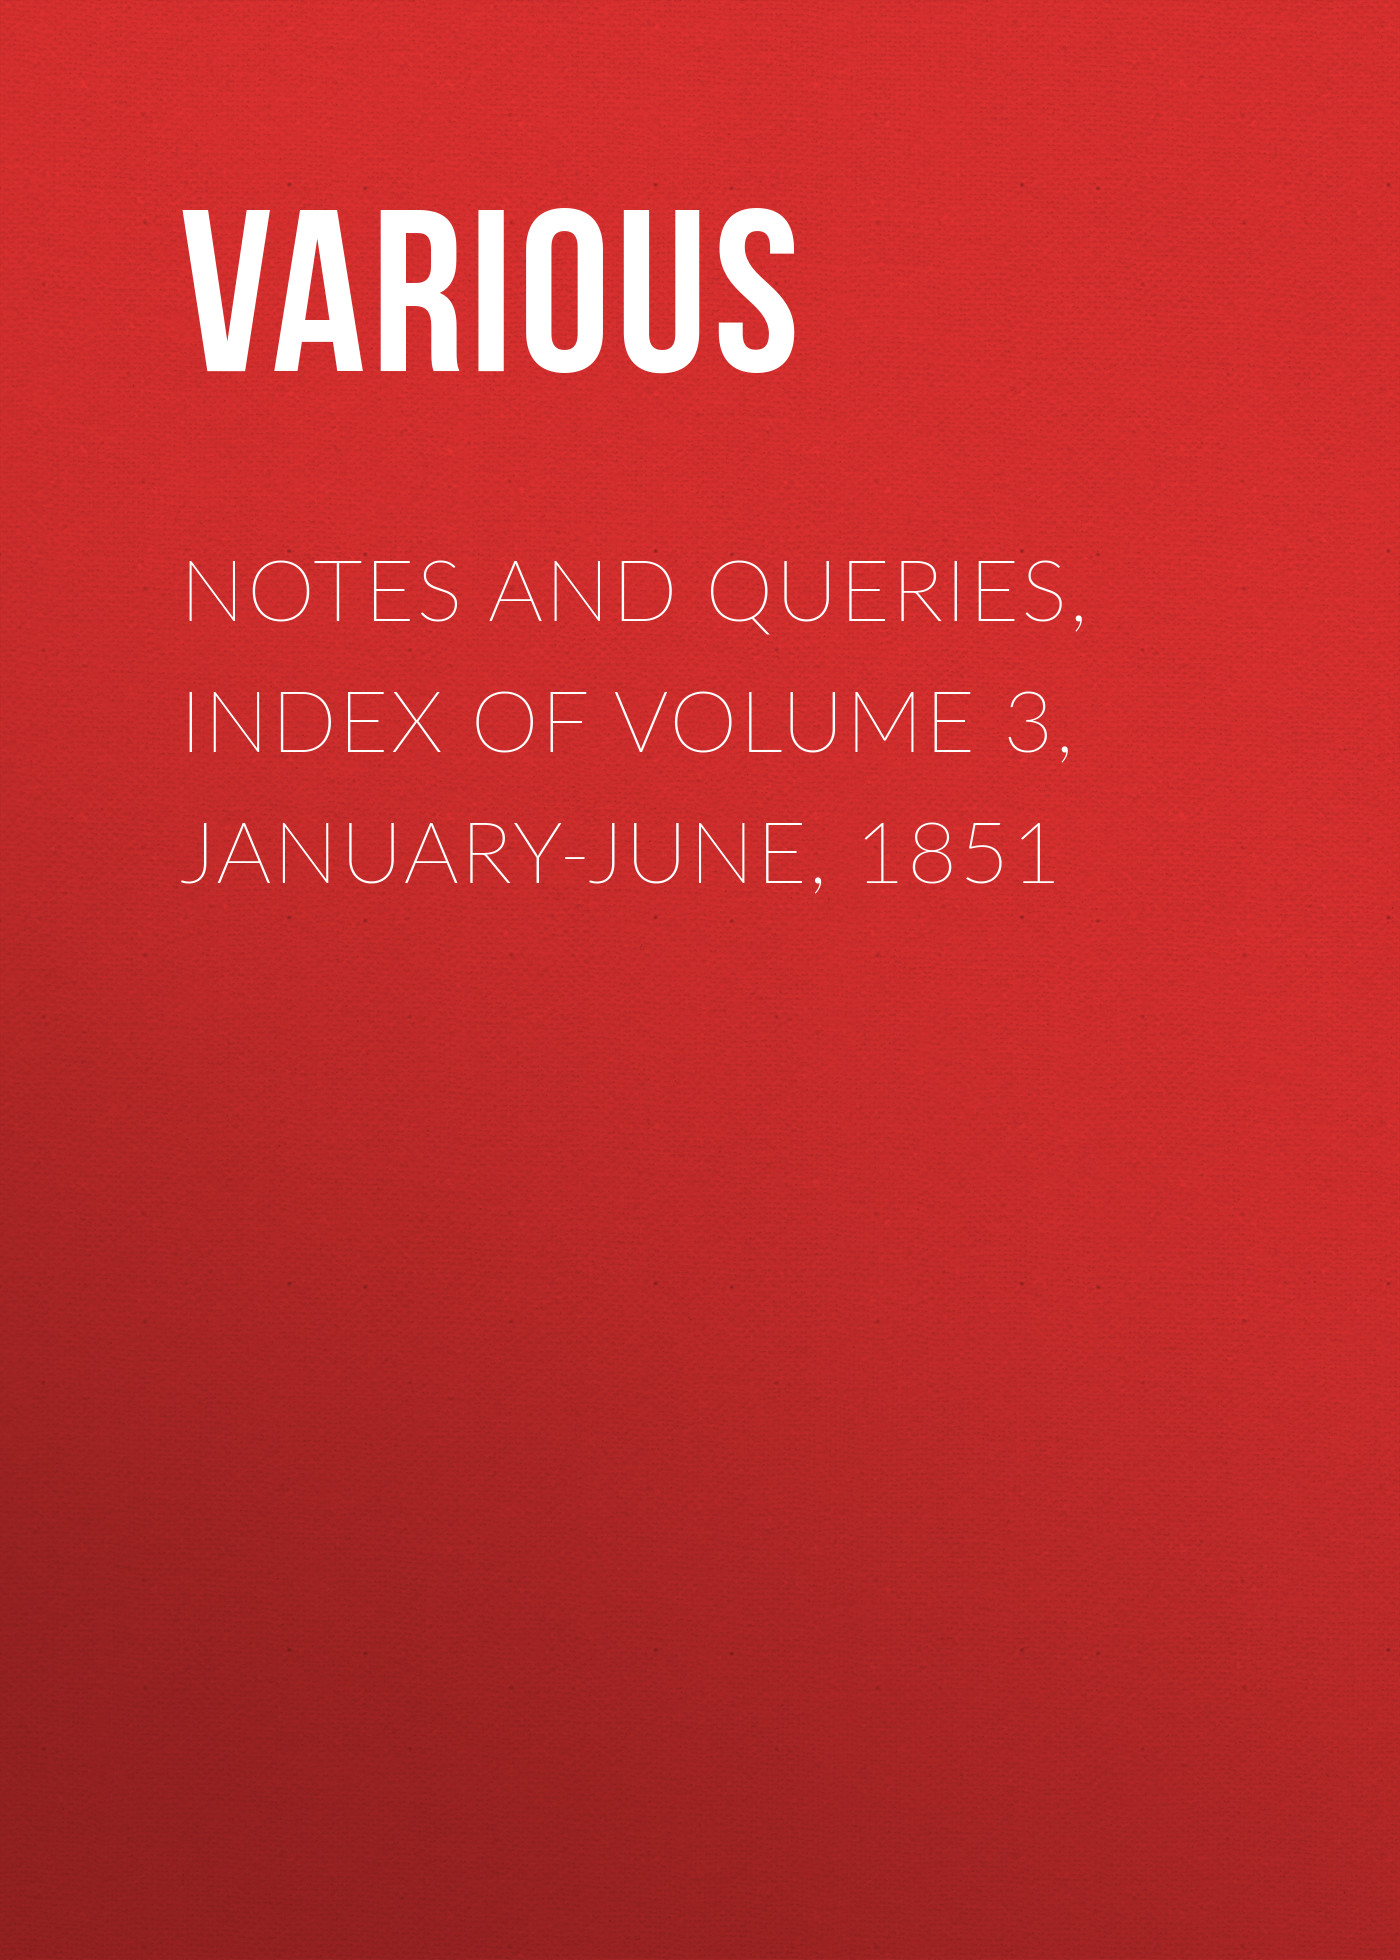 Various Notes and Queries, Index of Volume 3, January-June, 1851 cfr 5 parts 1 to 699 administrative personnel january 01 2017 volume 1 of 3